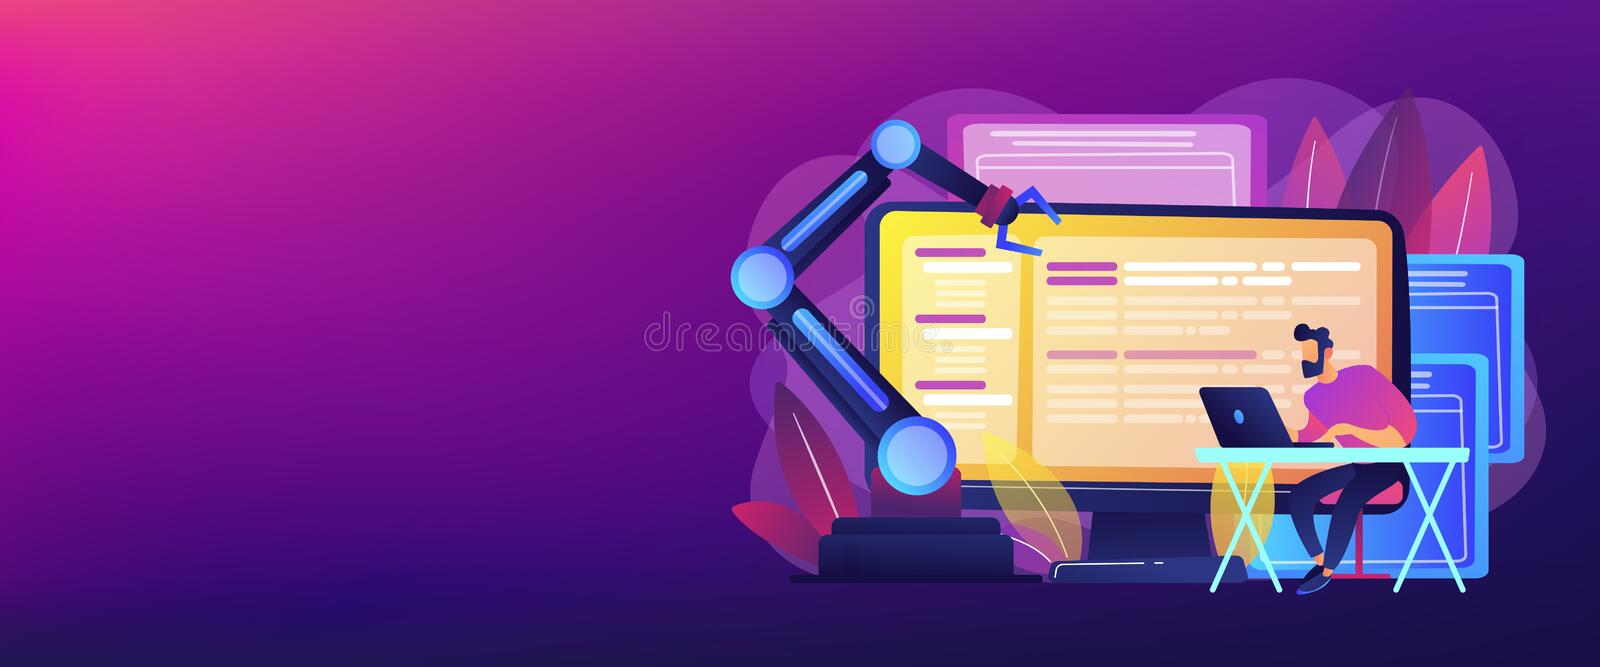 Open automation architecture concept banner header. Open automation architecture, open source robotics soft, free development concept. Header or footer banner vector illustration